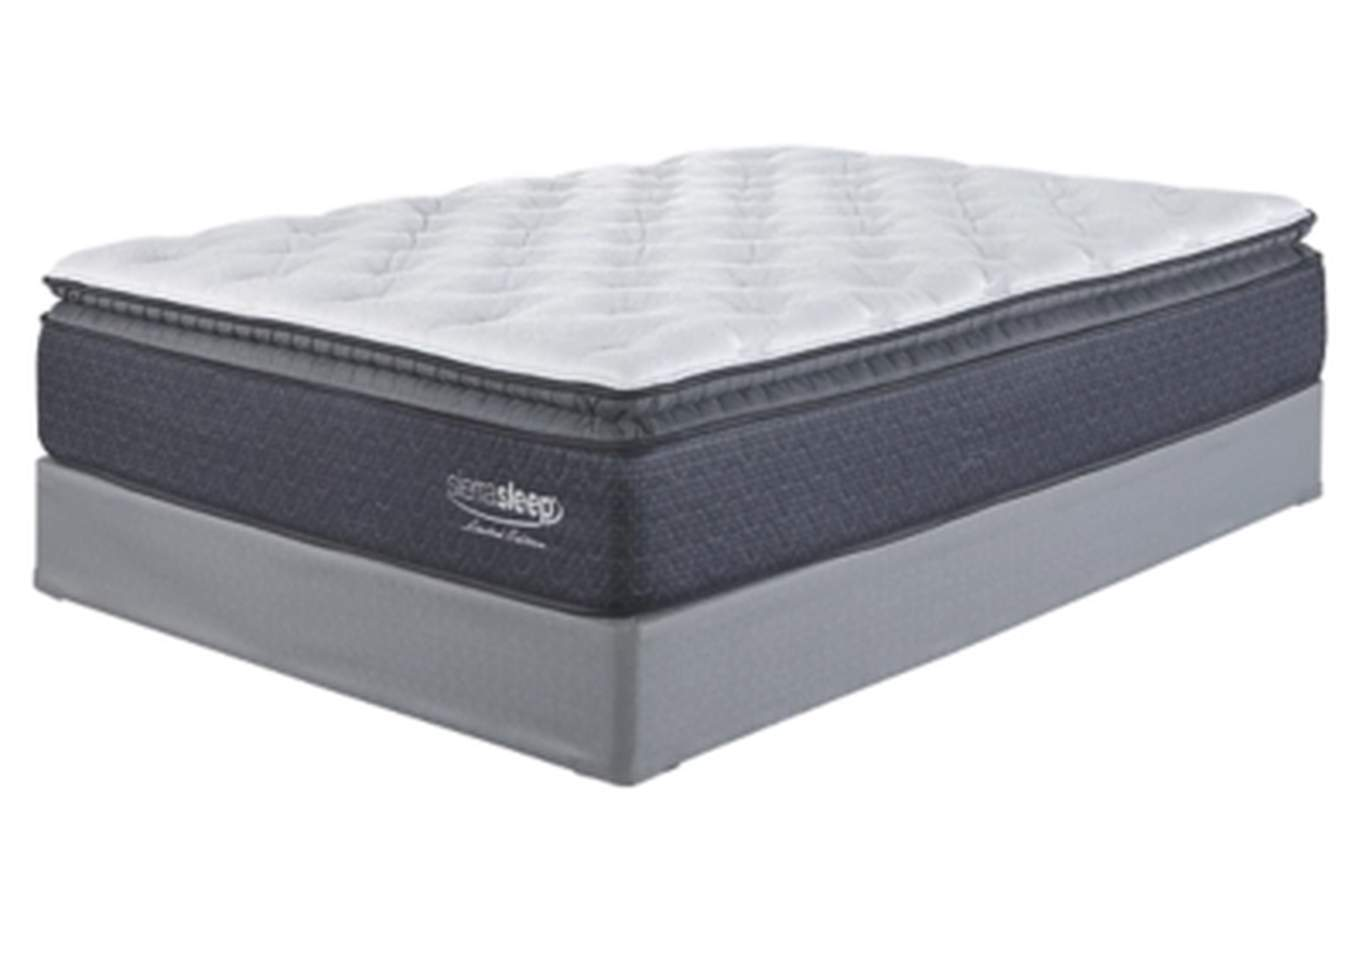 Limited Edition Pillowtop White Full Mattress,Sierra Sleep